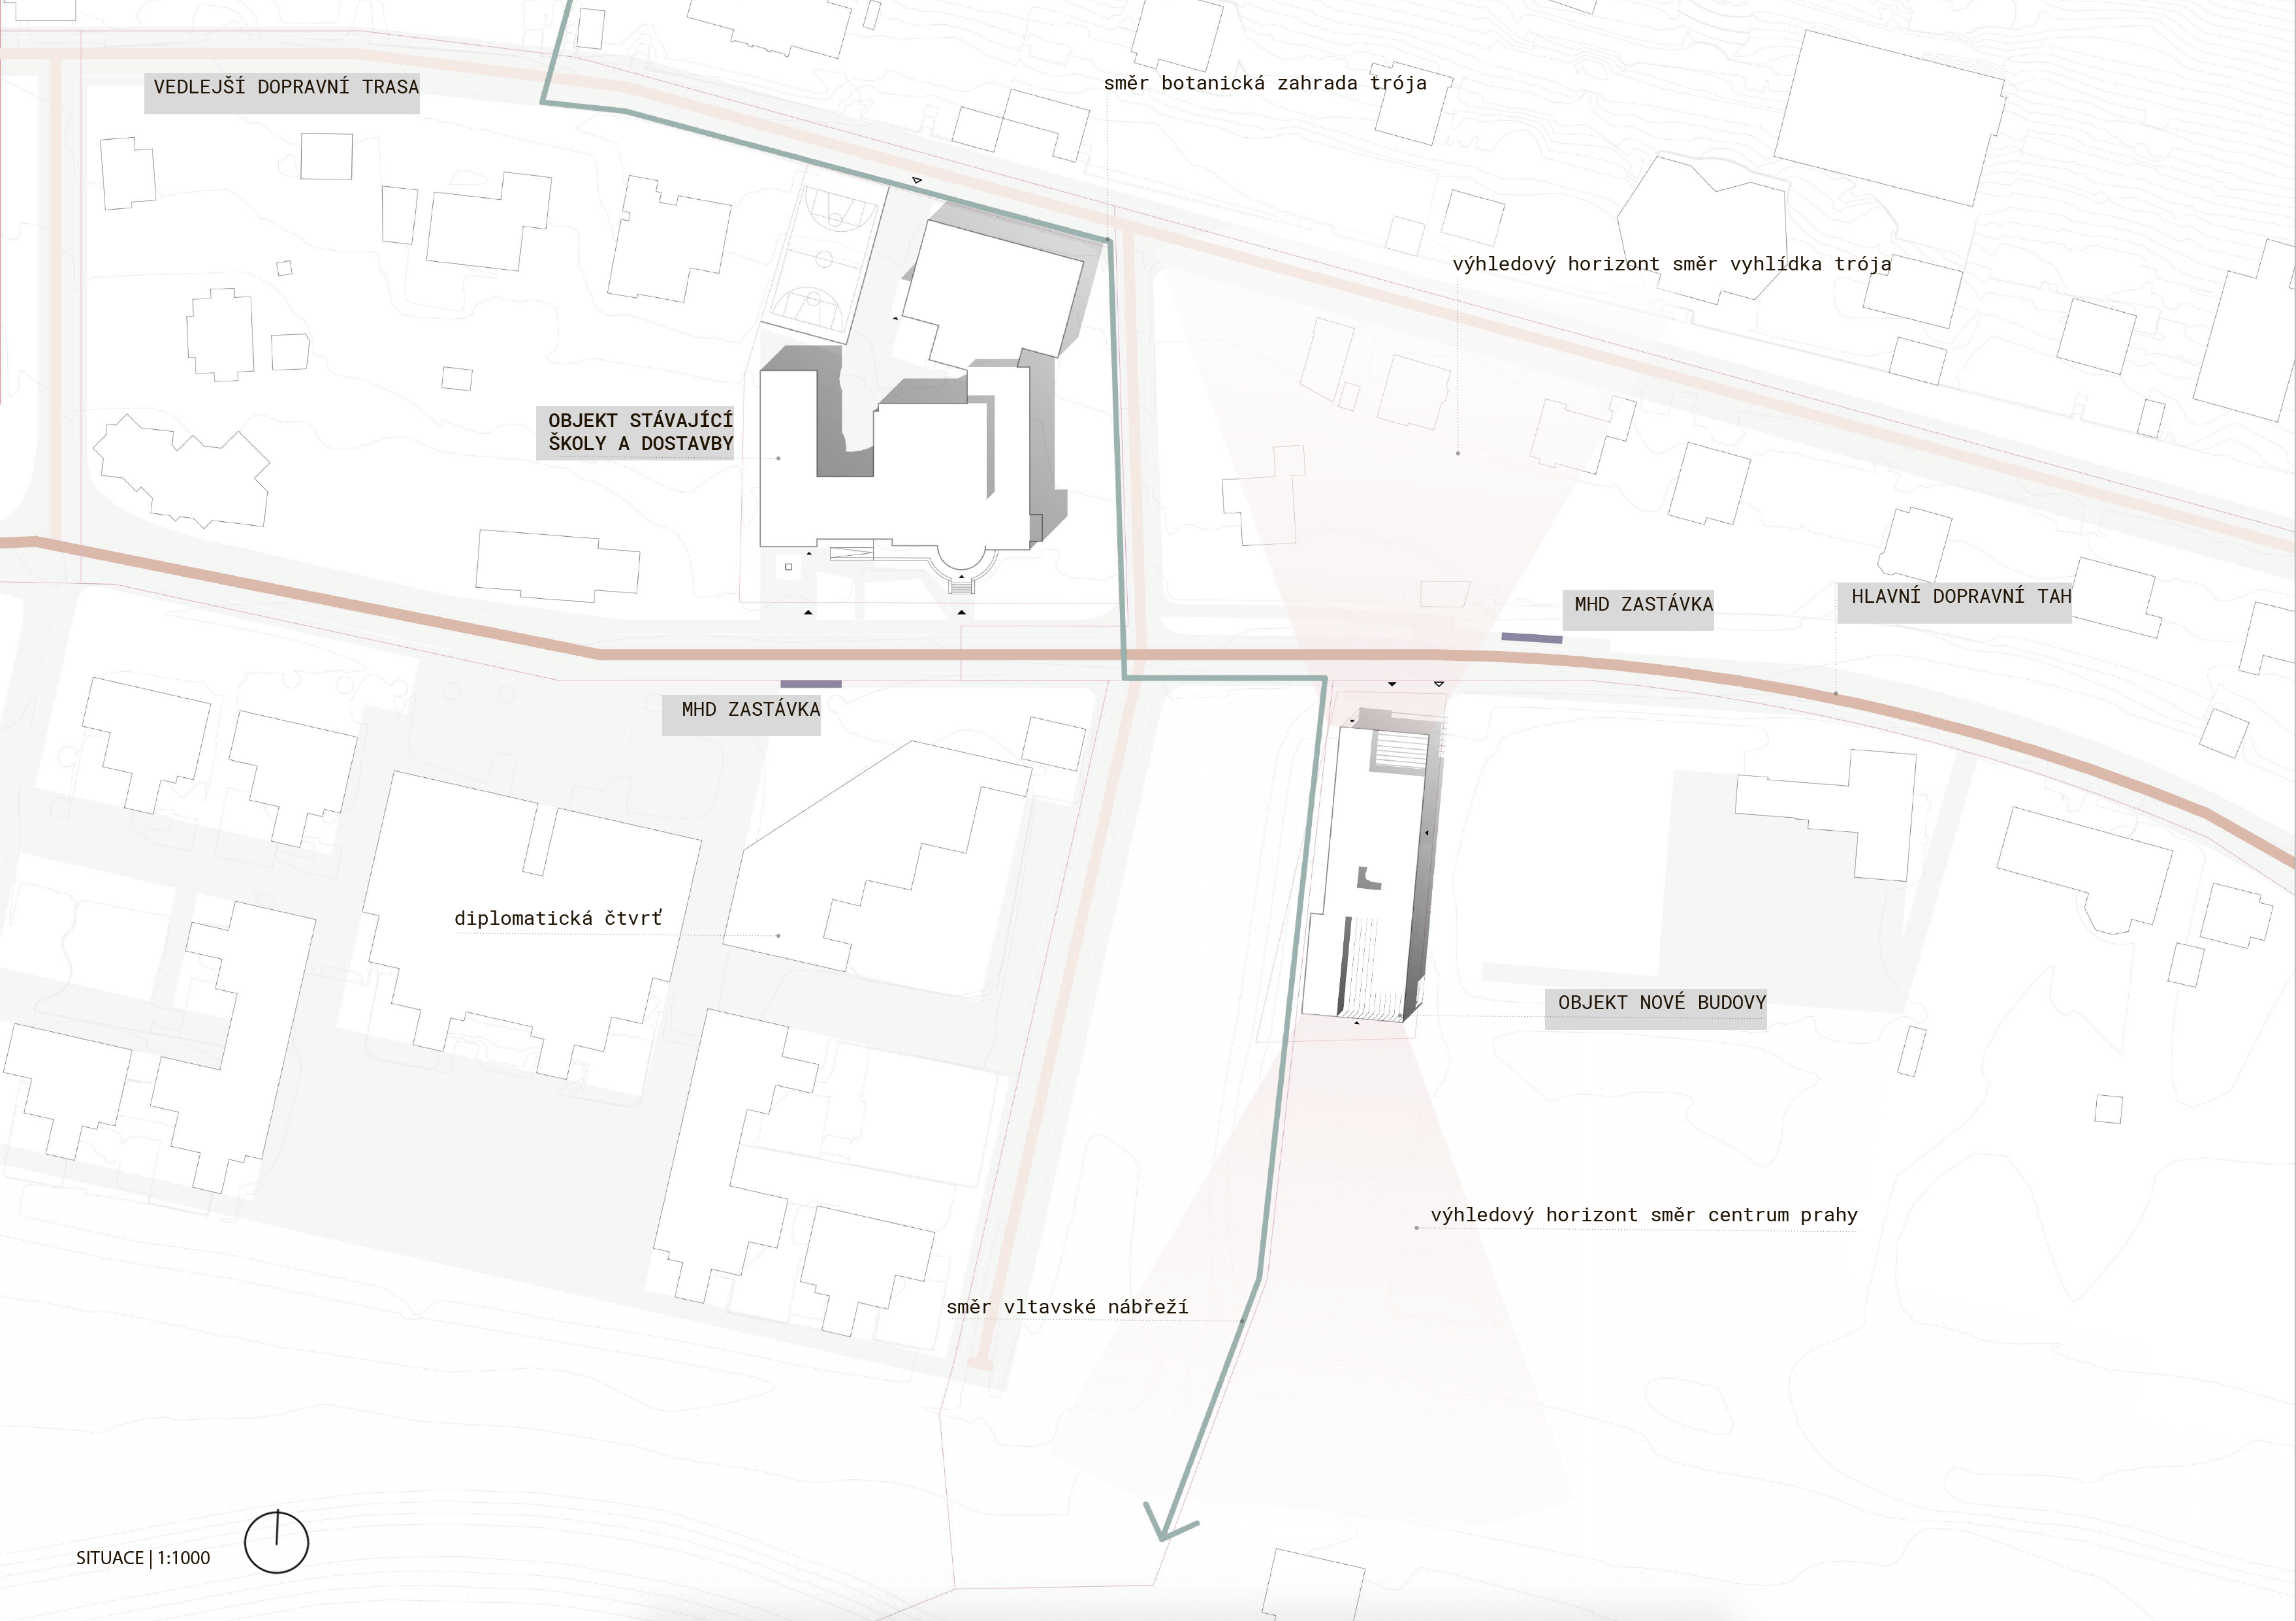 Site plan of wider relations